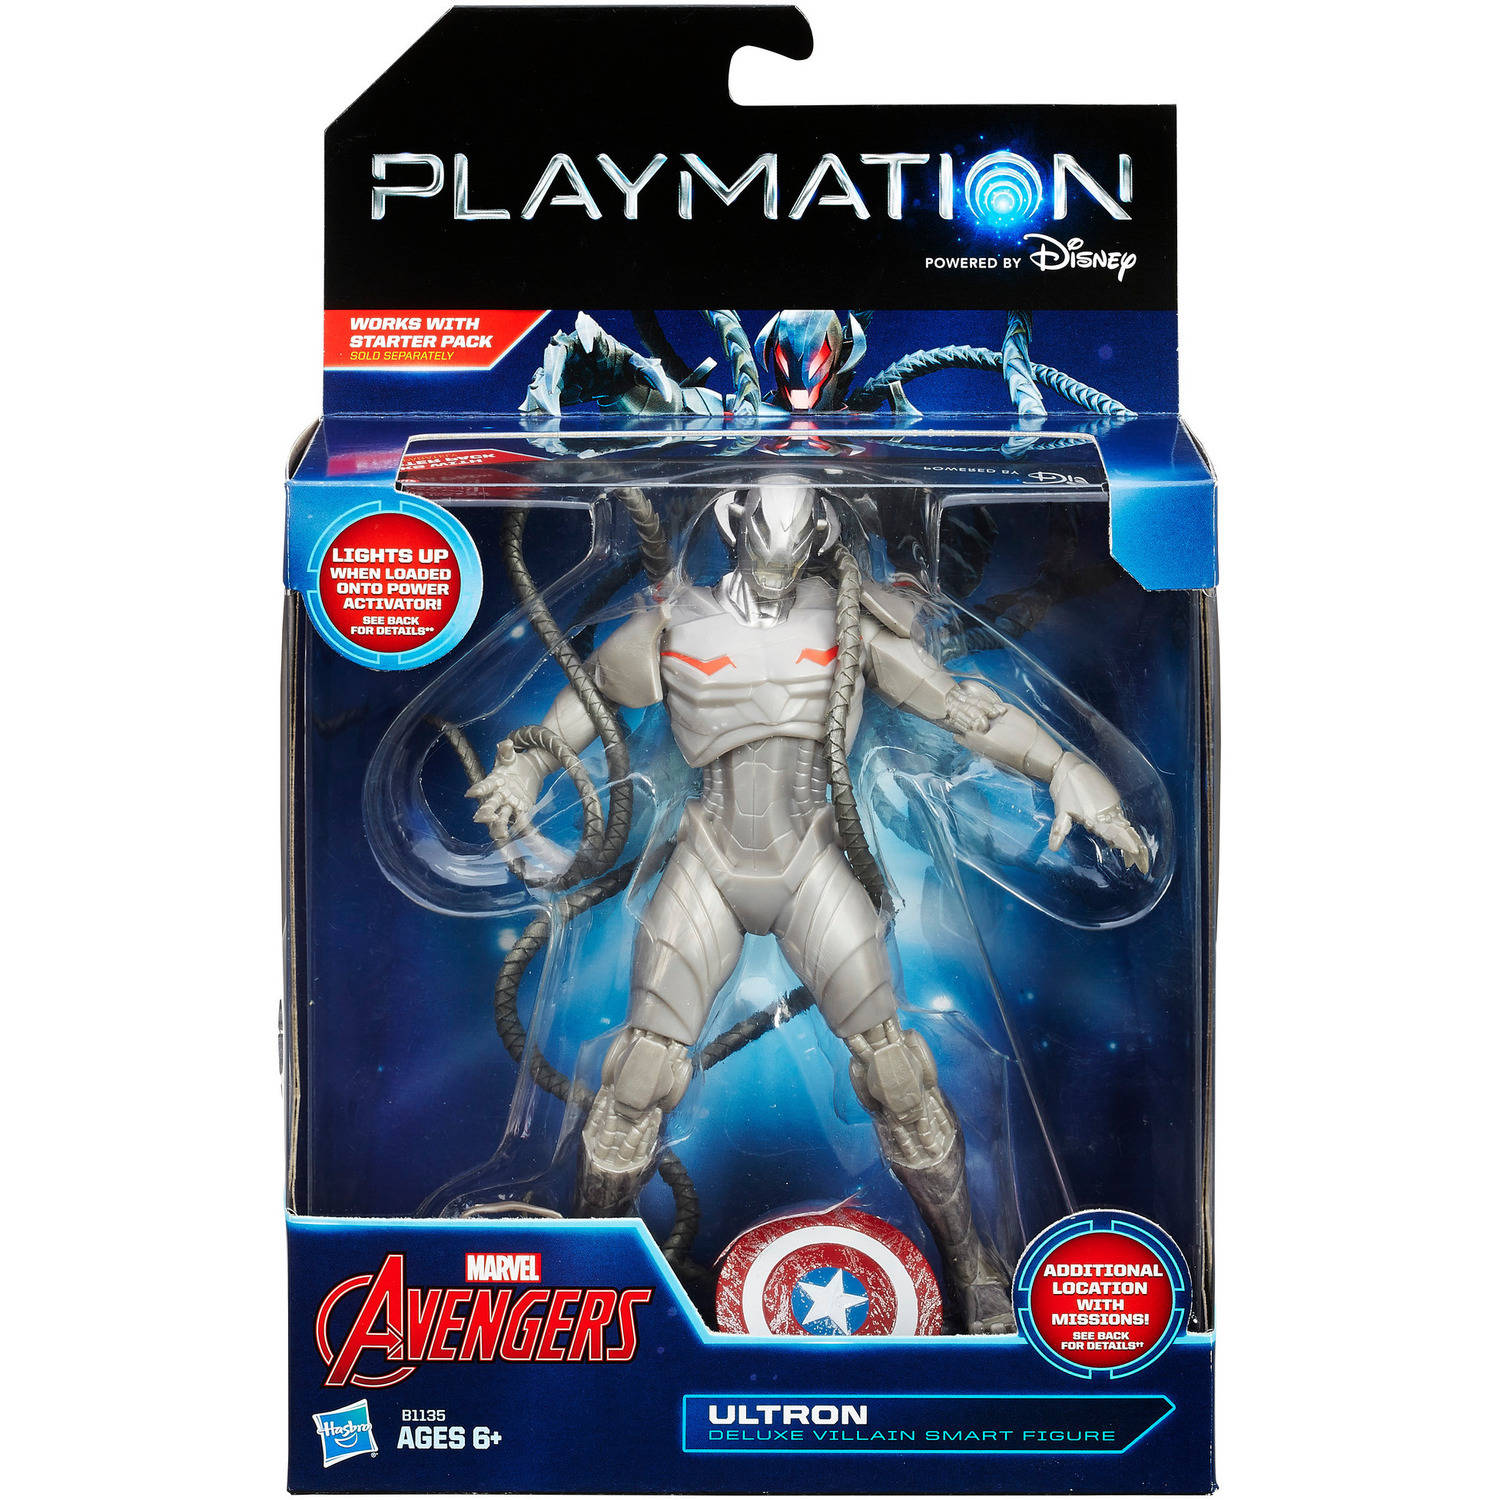 Playmation Marvel Avengers Ultron Deluxe Smart Figure